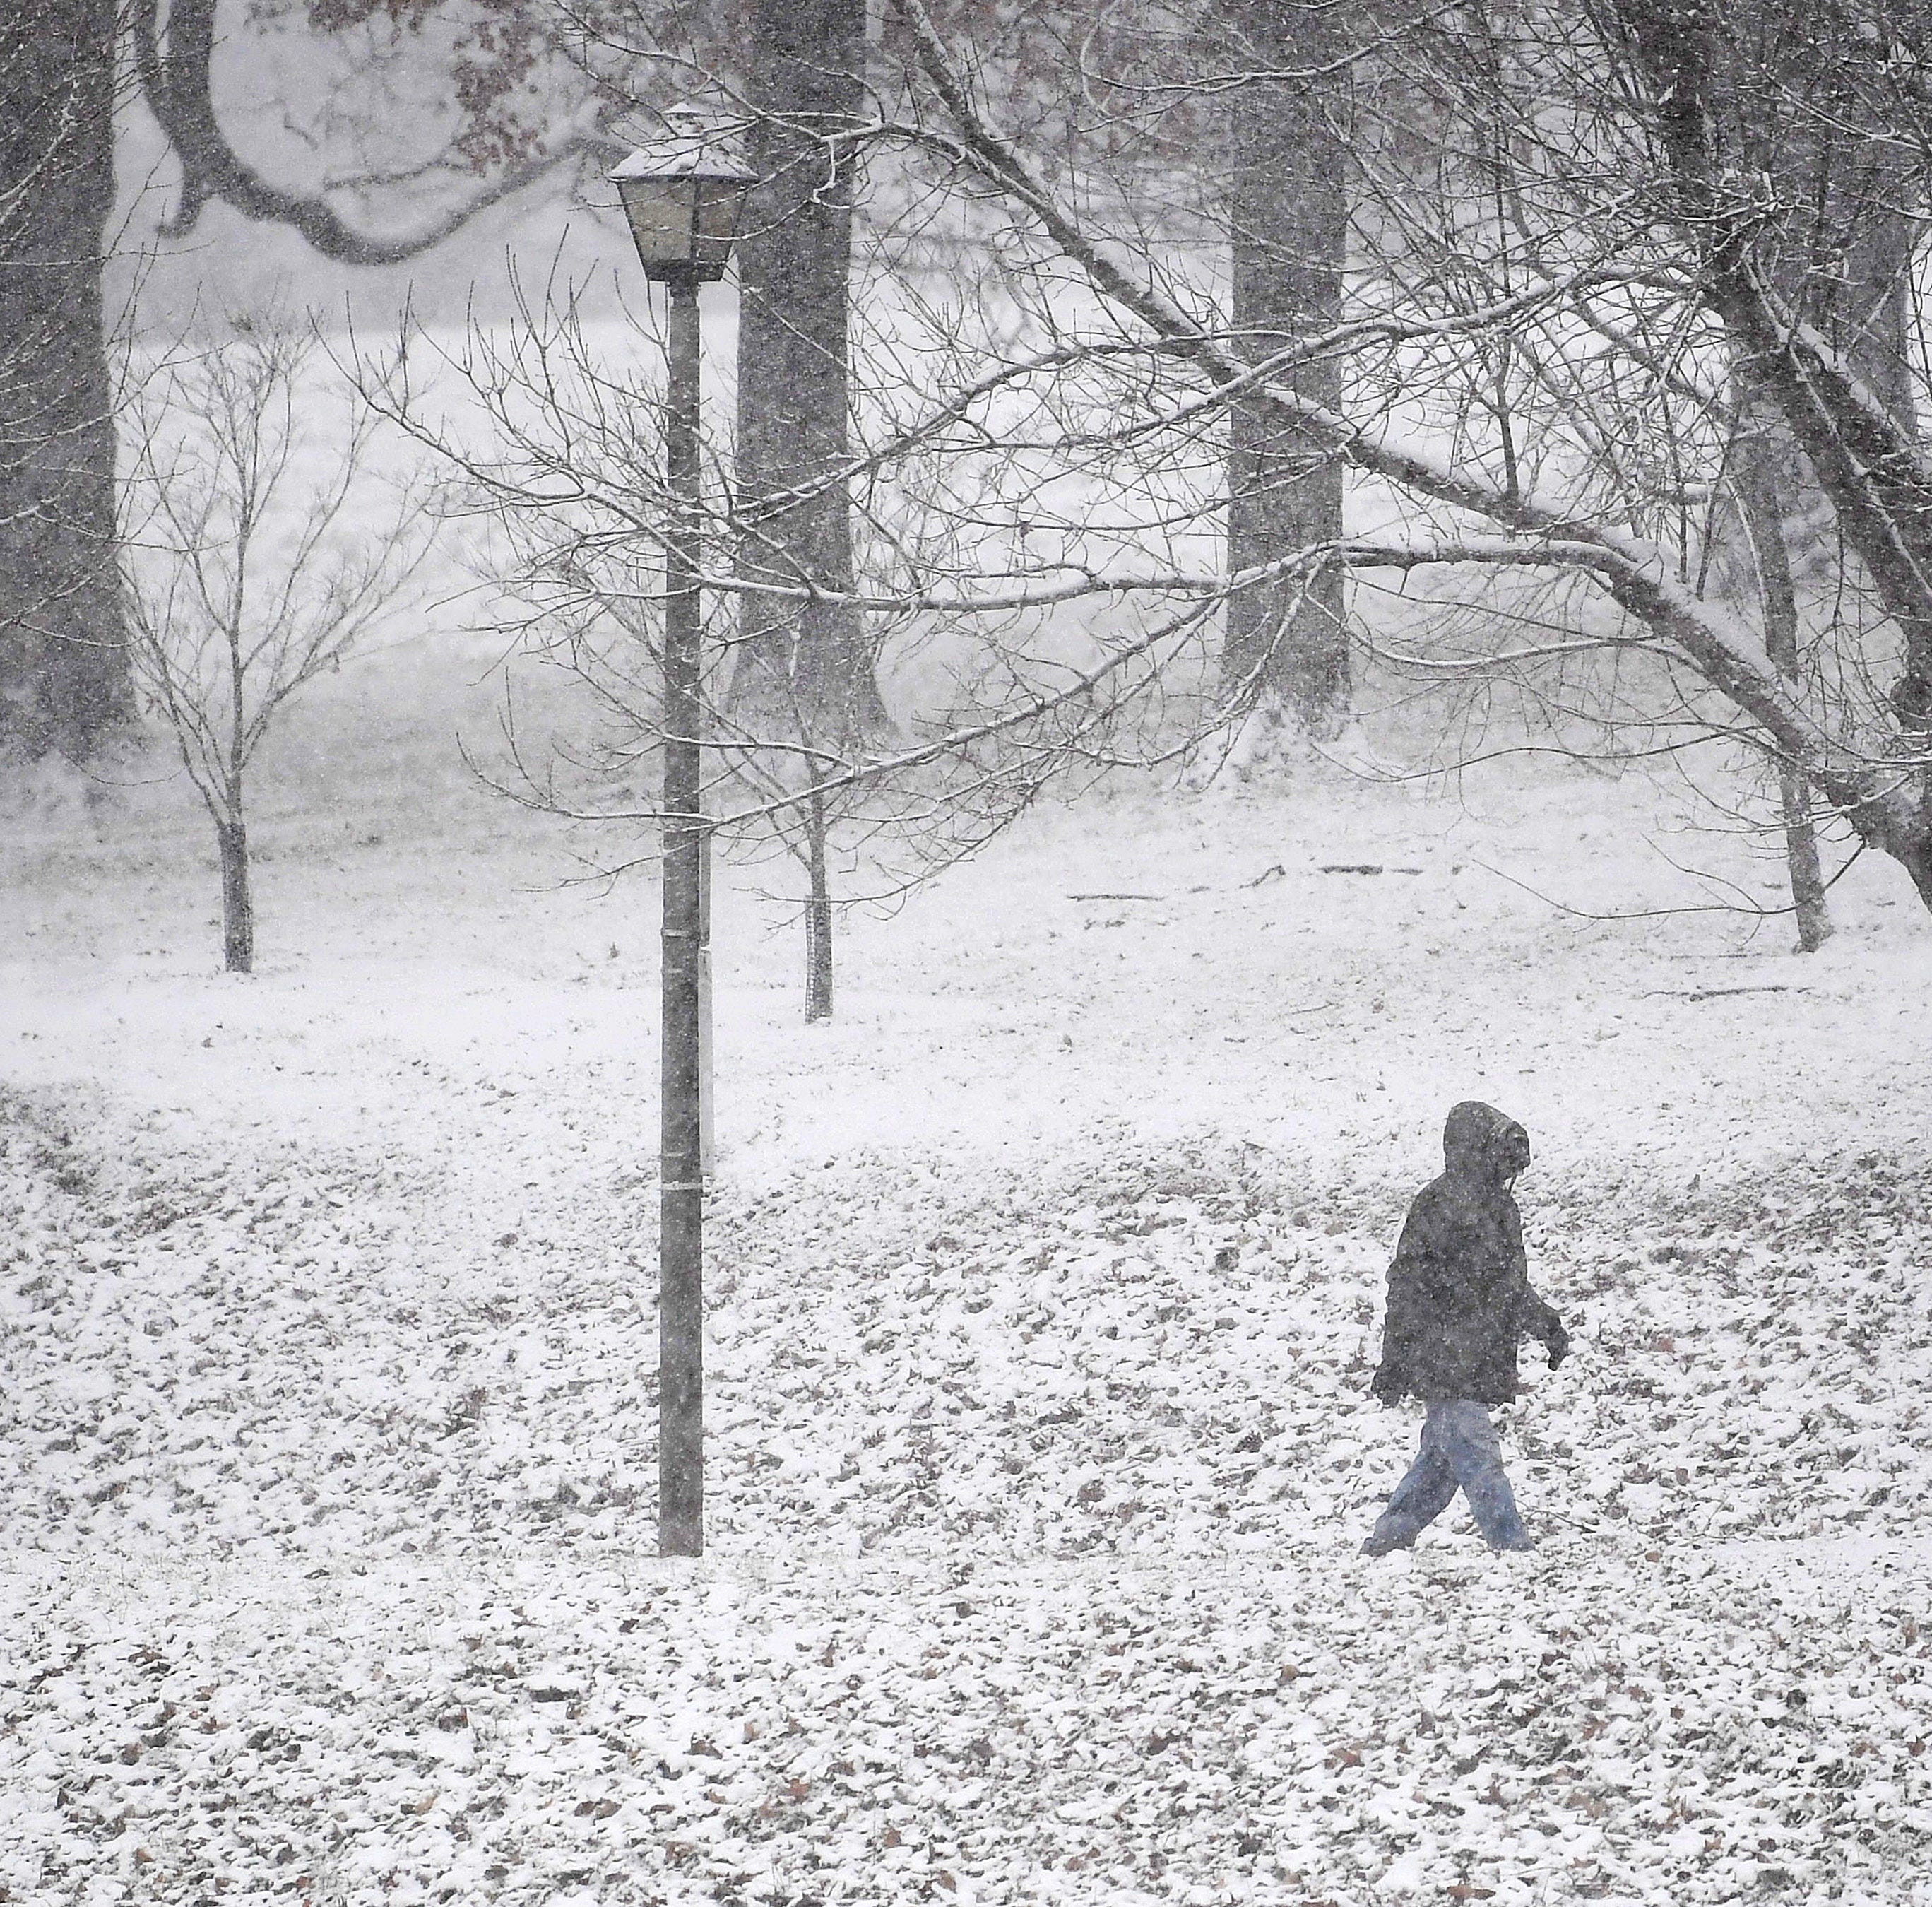 National Weather Service says between 5-10 inches of snow Tuesday night into Wednesday morning